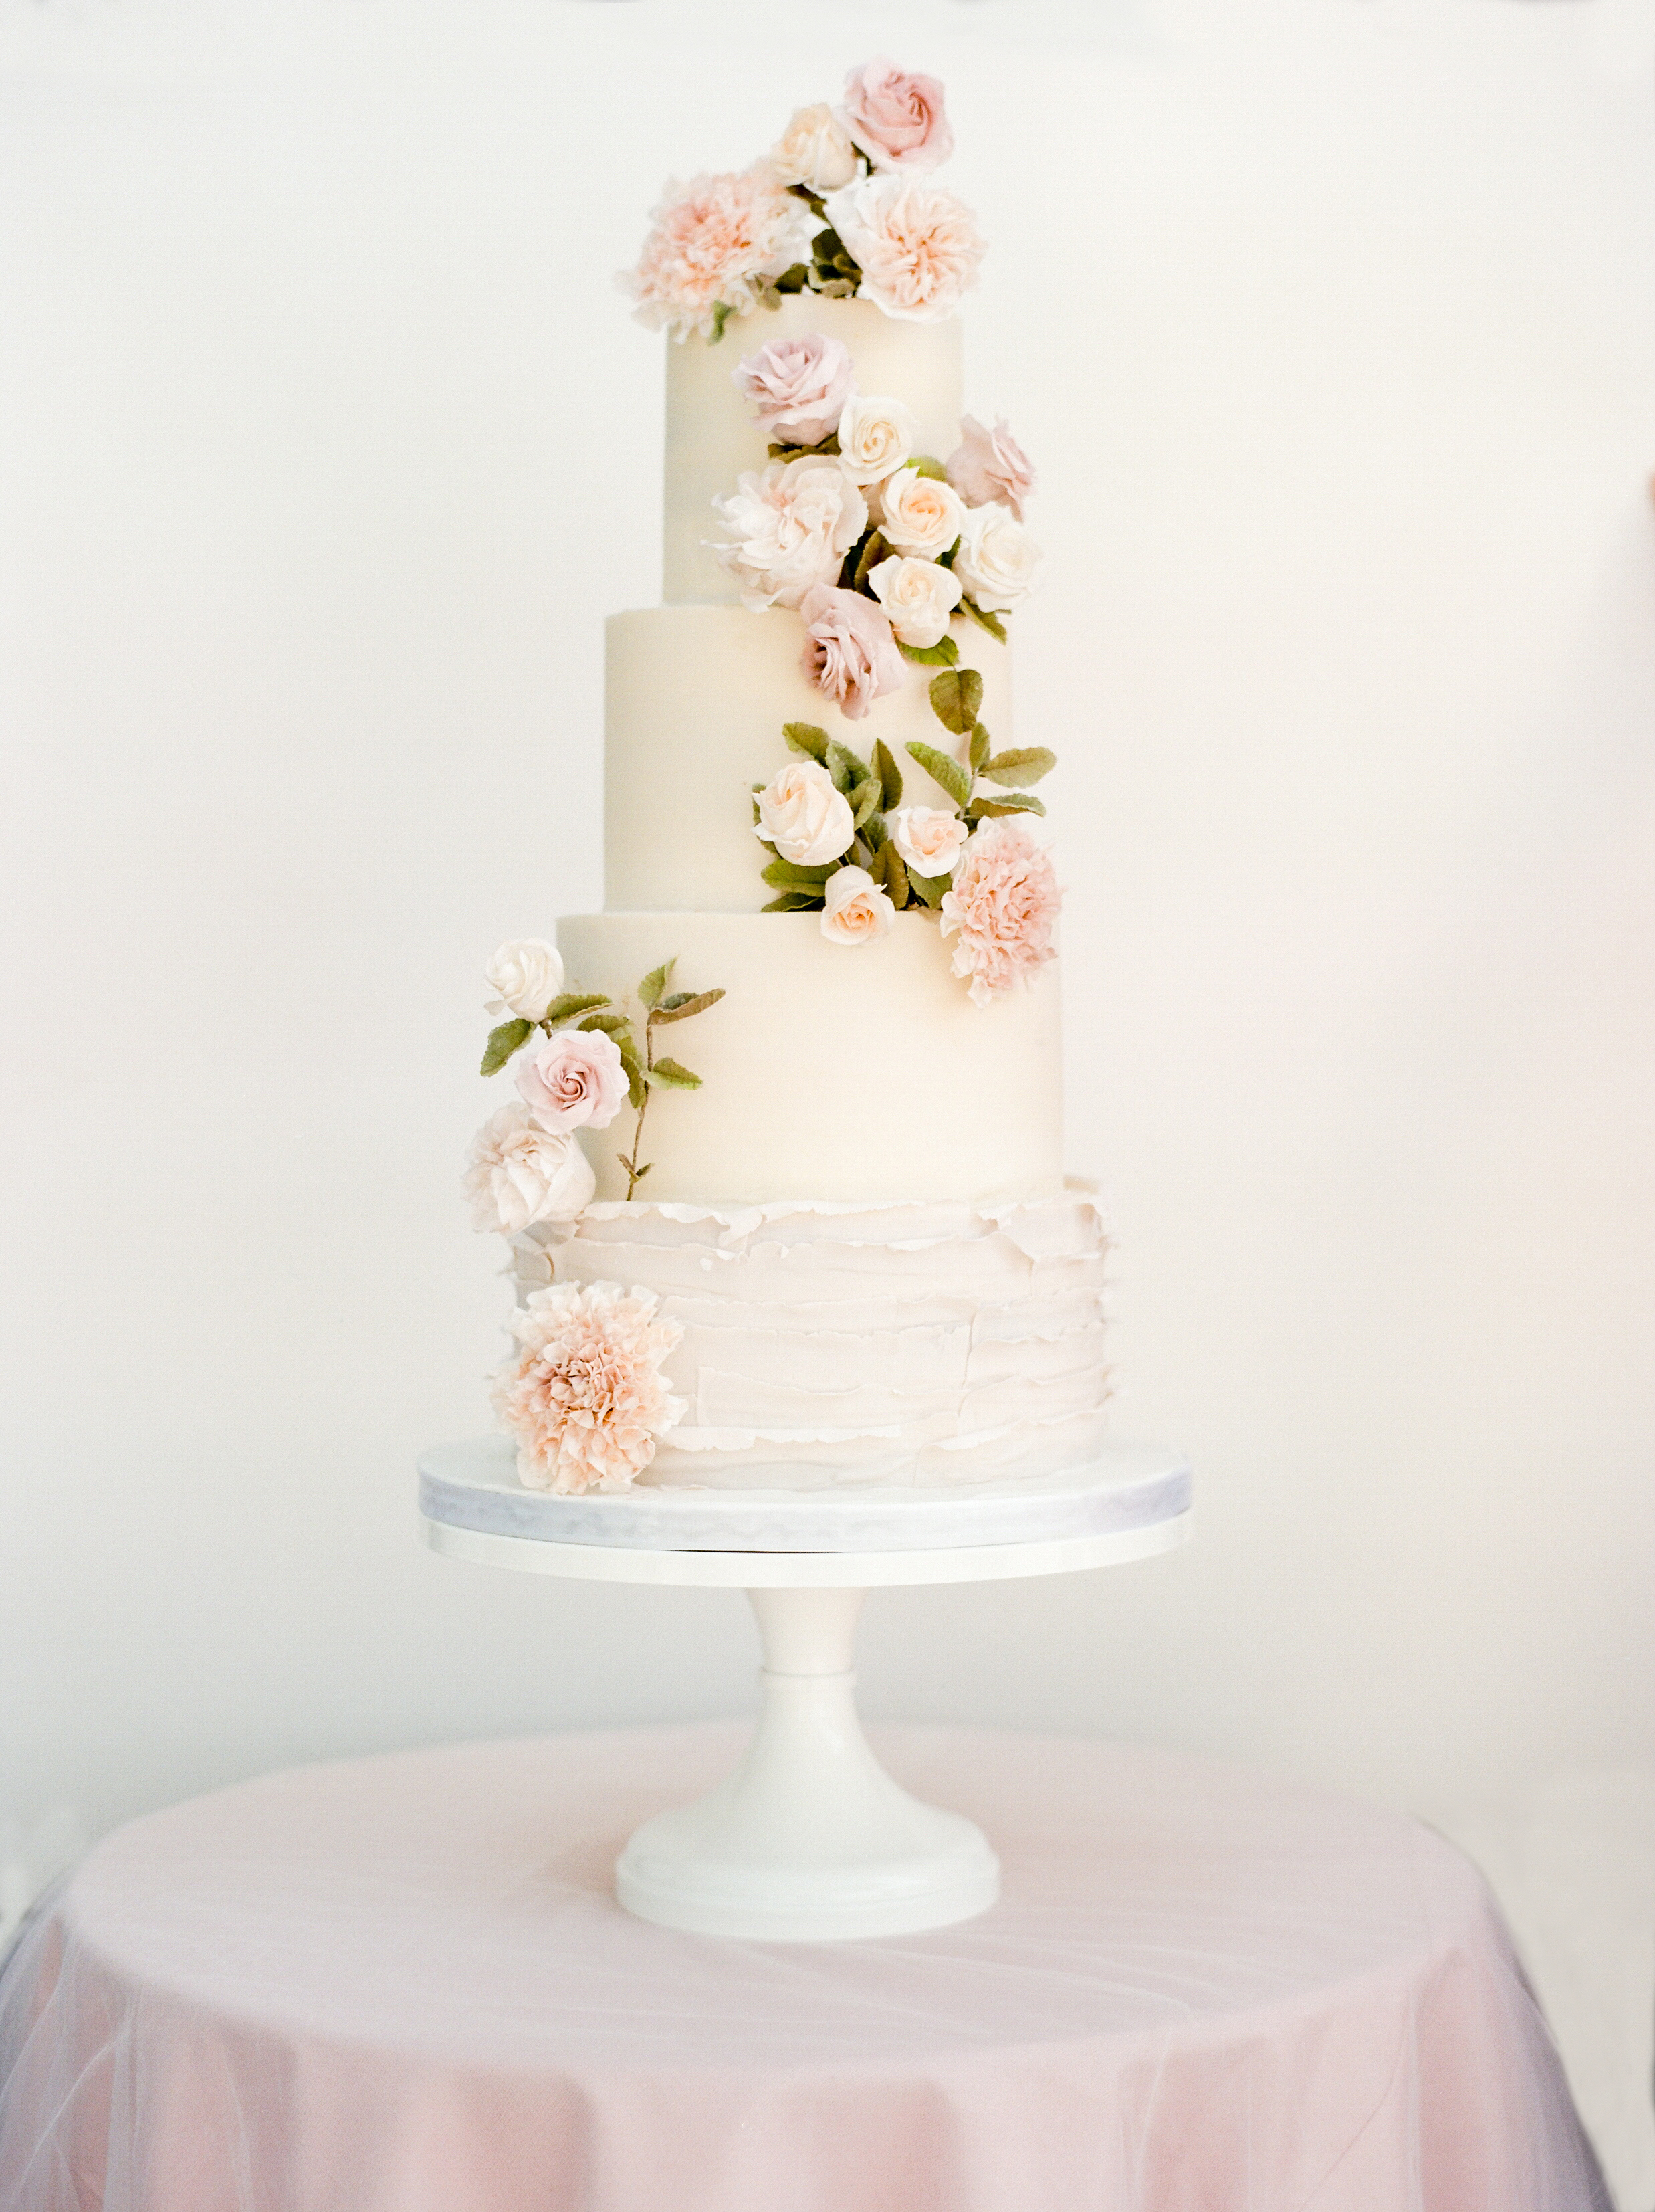 Buttercup Bakery | Jennifer Laura Design